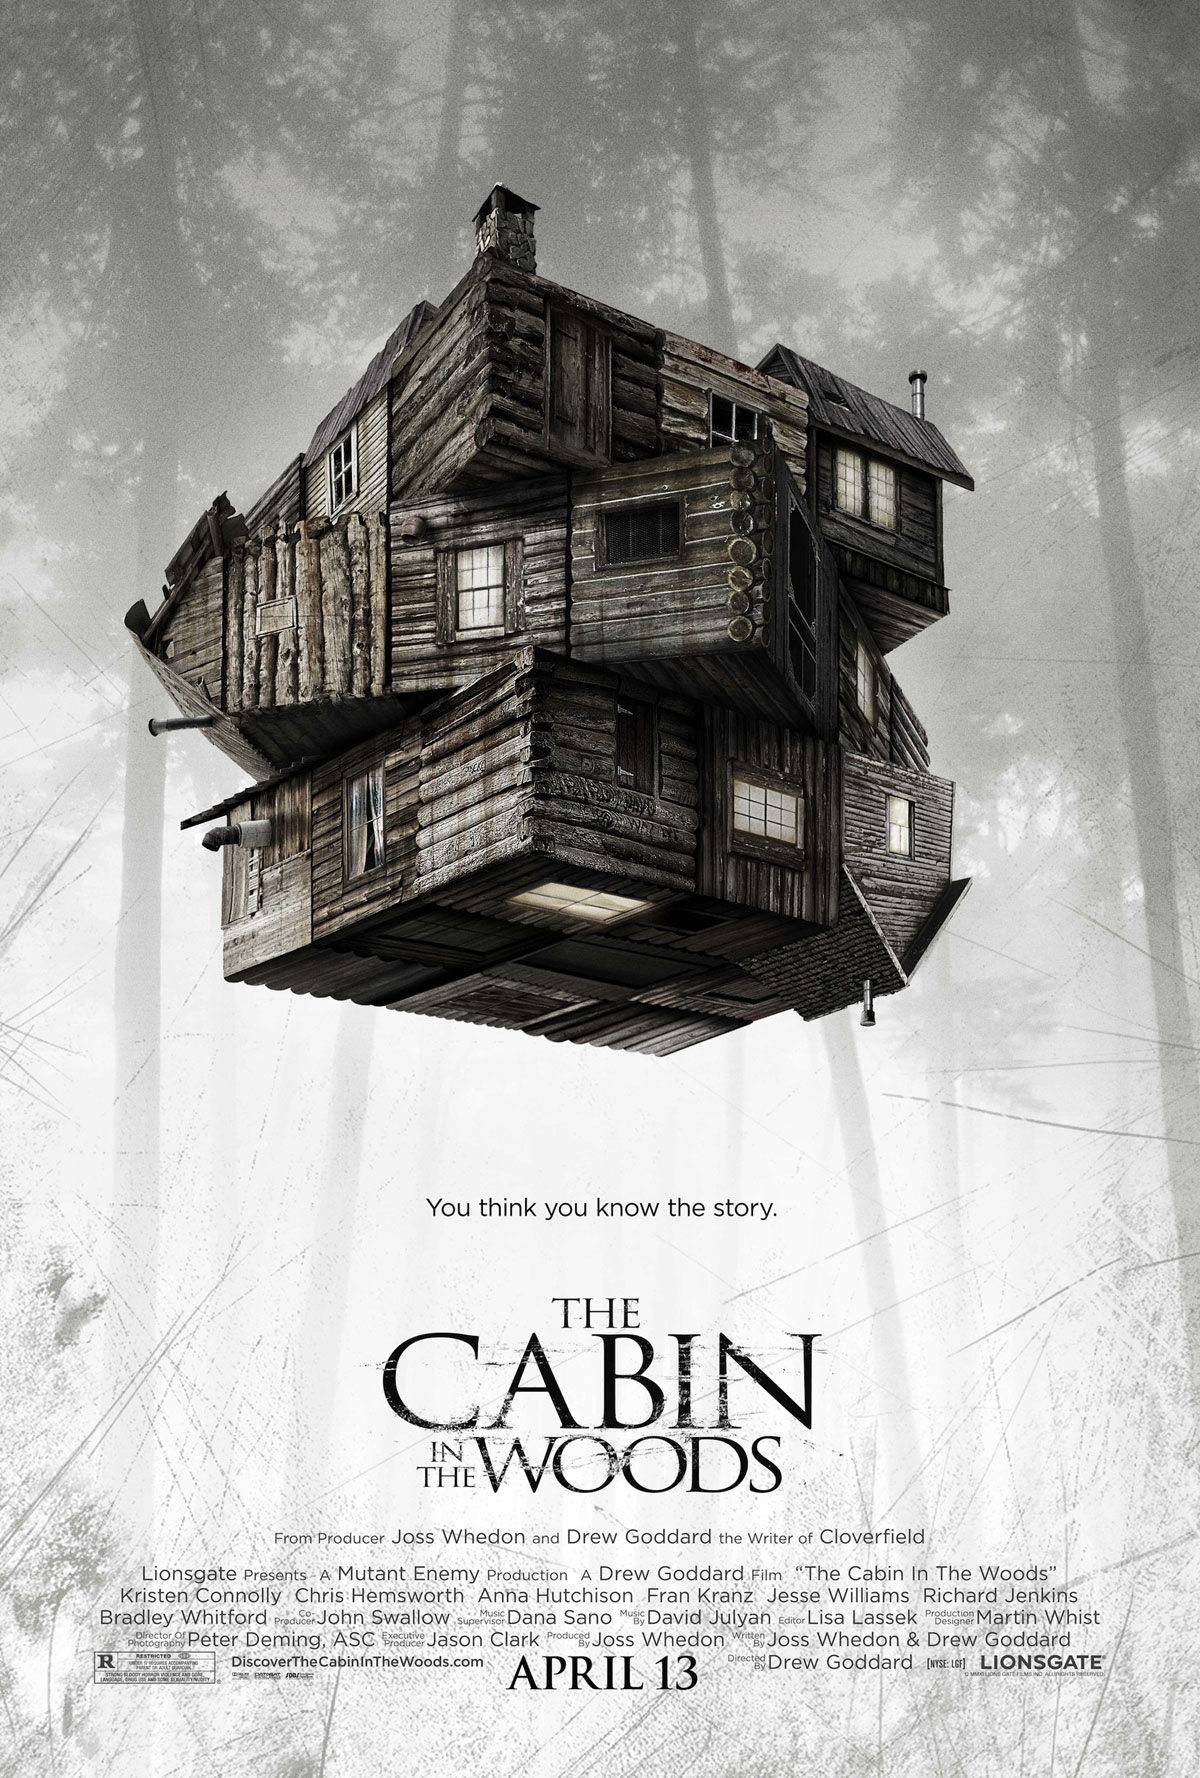 cabin-in-the-woods-poster.jpg